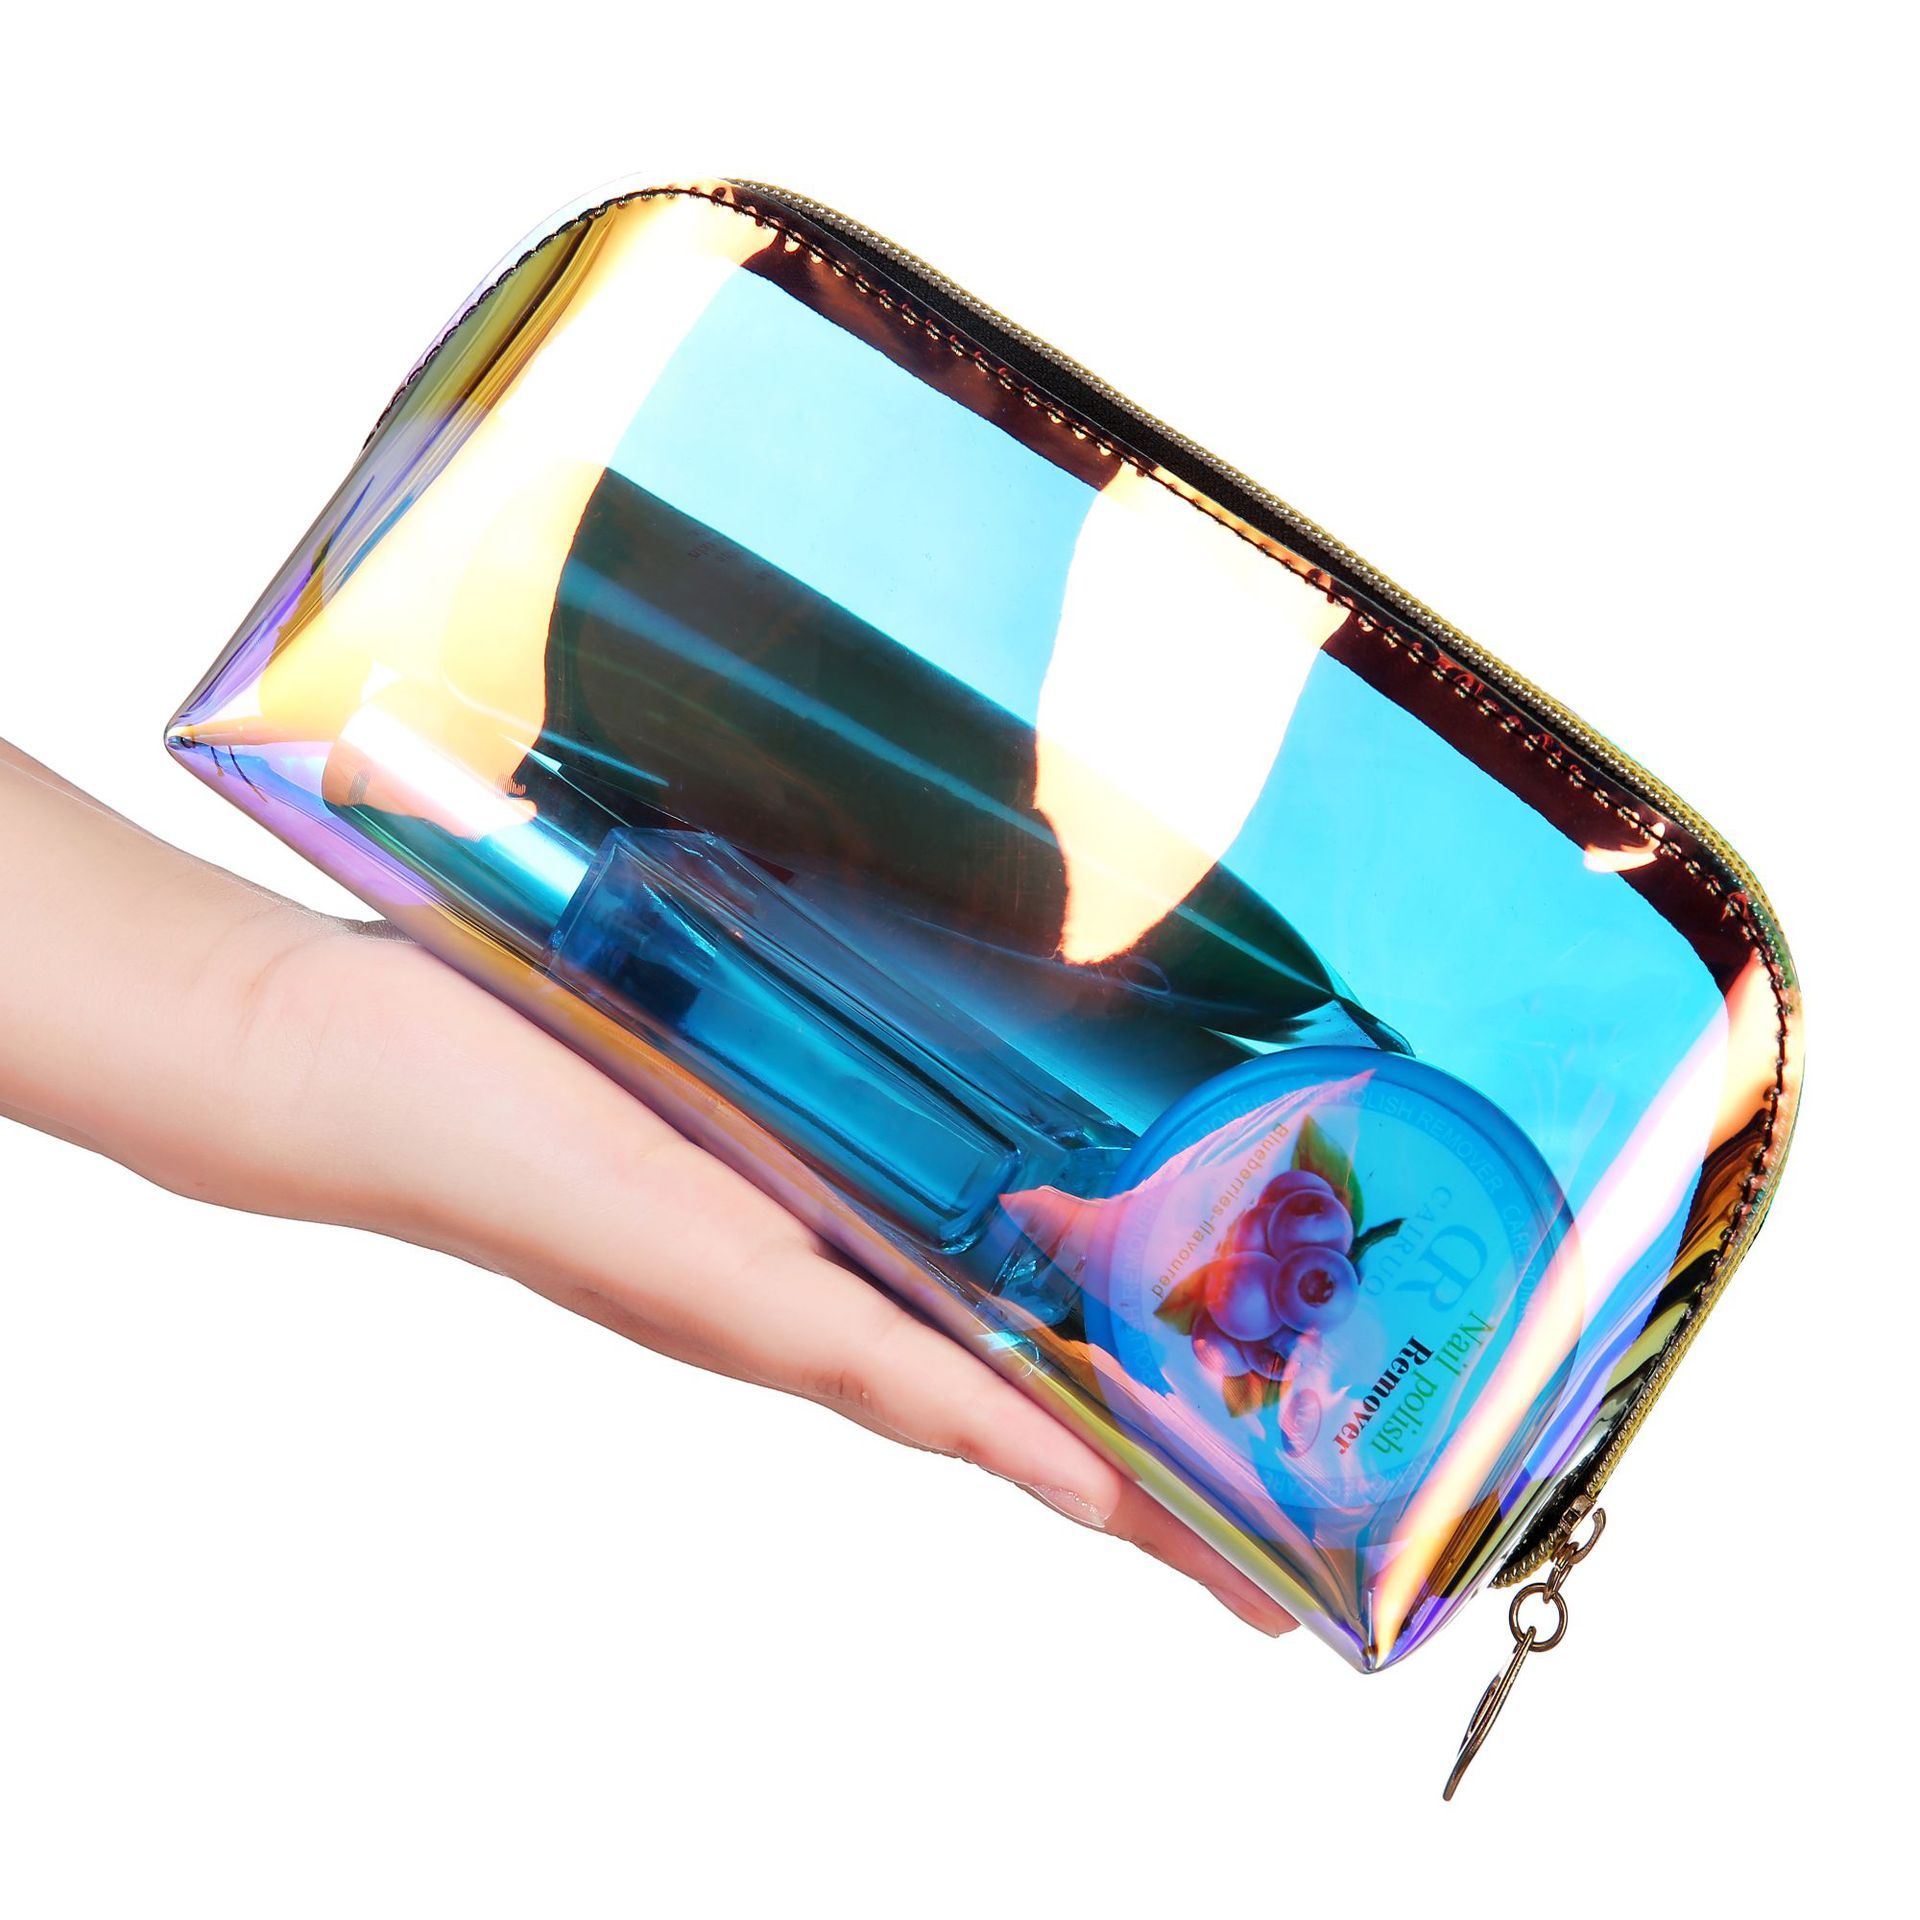 2019 Transparent Waterproof Laser Cosmetic Bags Women Neceser Make Up Bag PVC Pouch Wash Toiletry Bag Travel Organizer Case